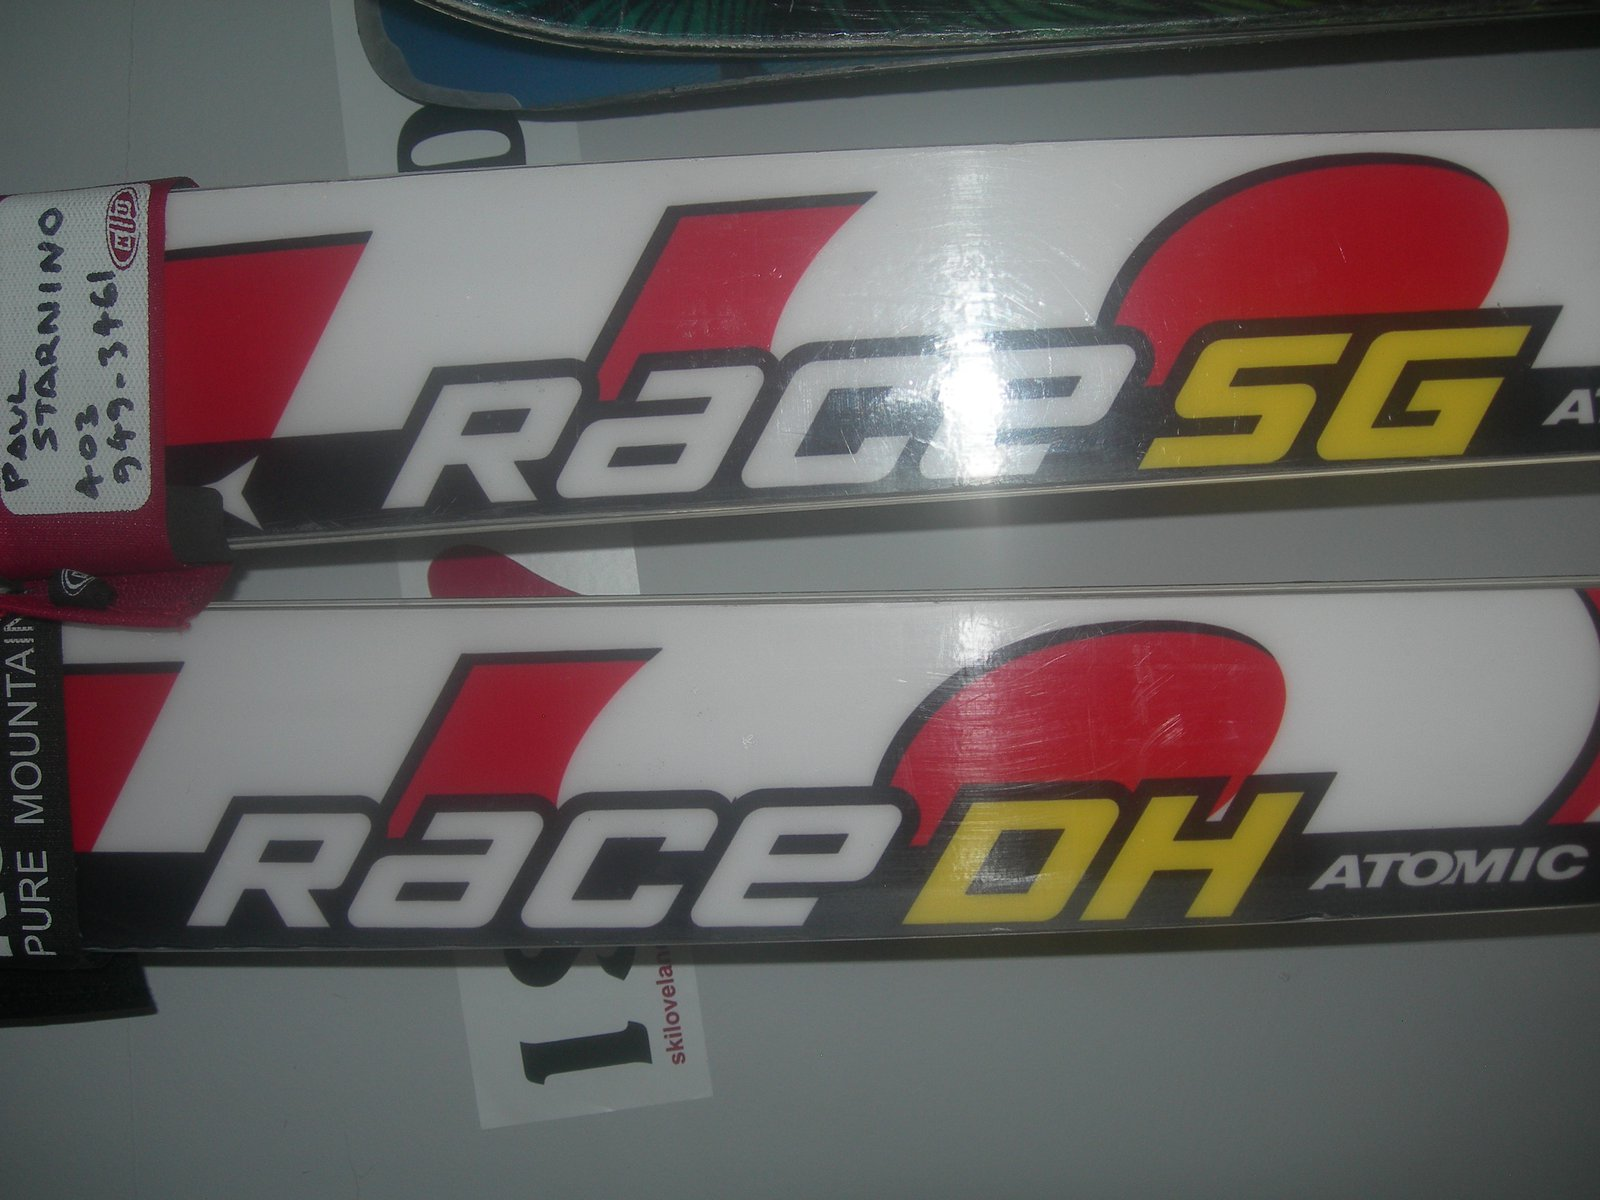 Skis close-up